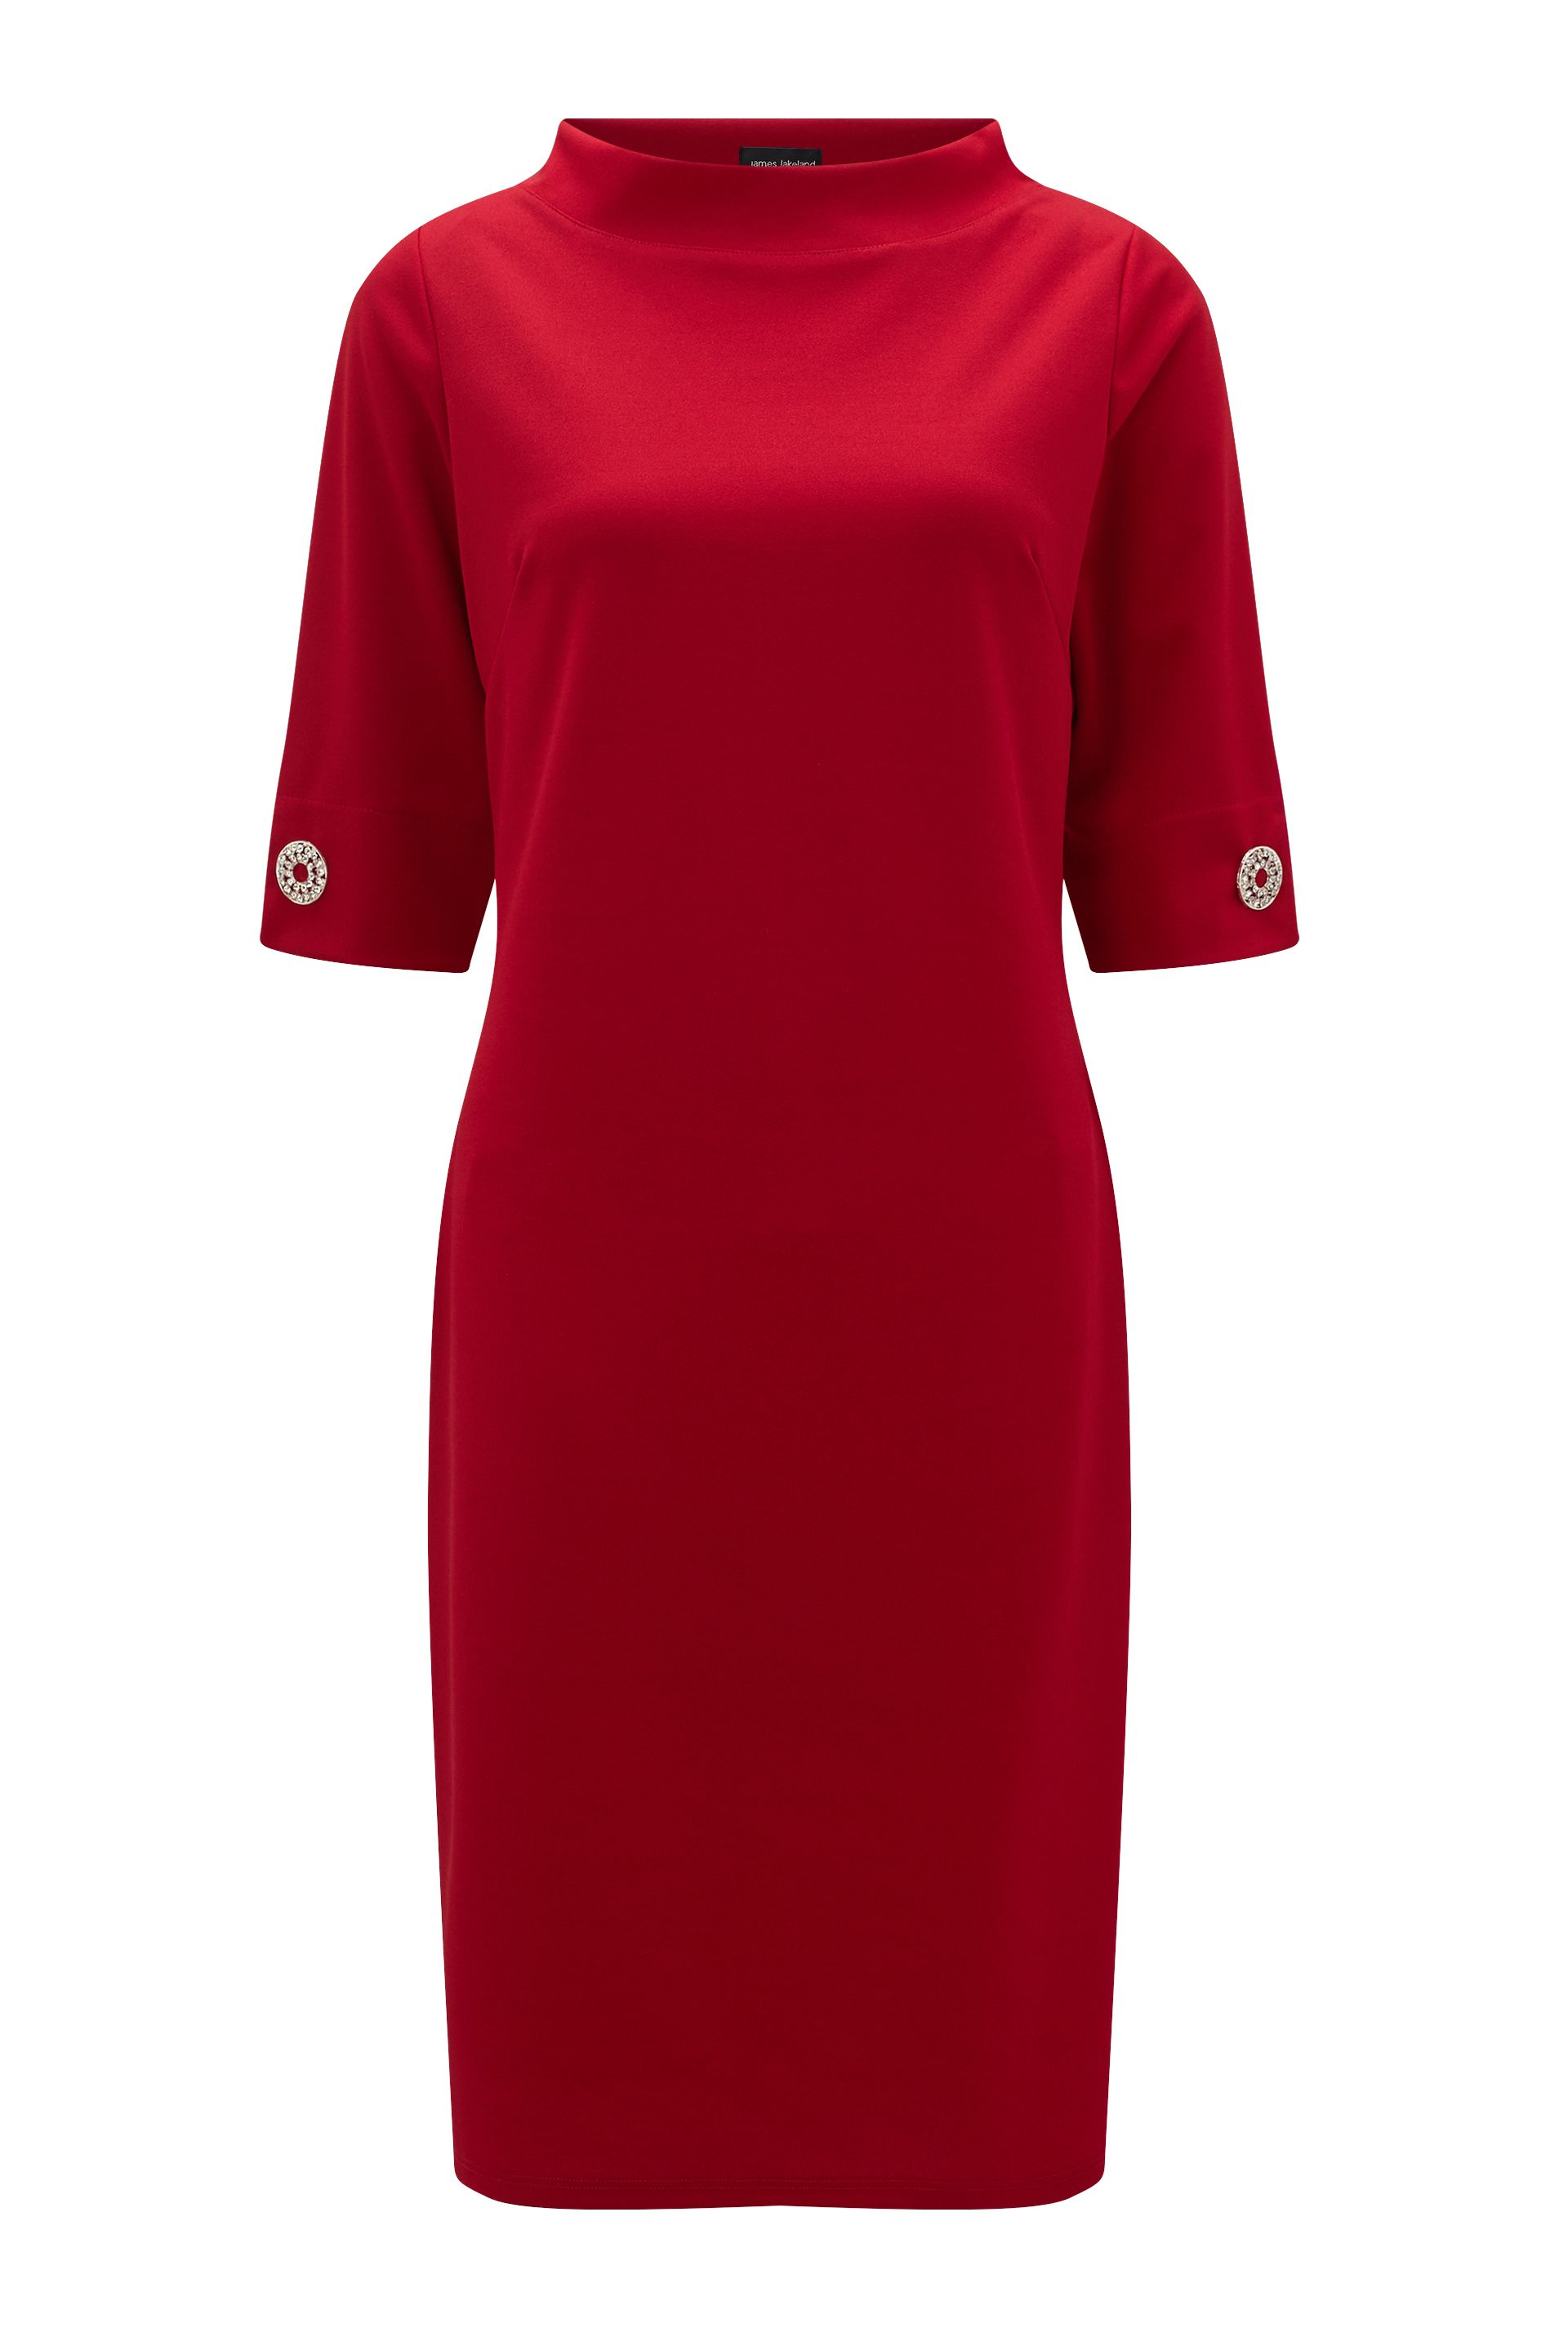 James Lakeland 3/4 Sleeve Strass Dress, Red